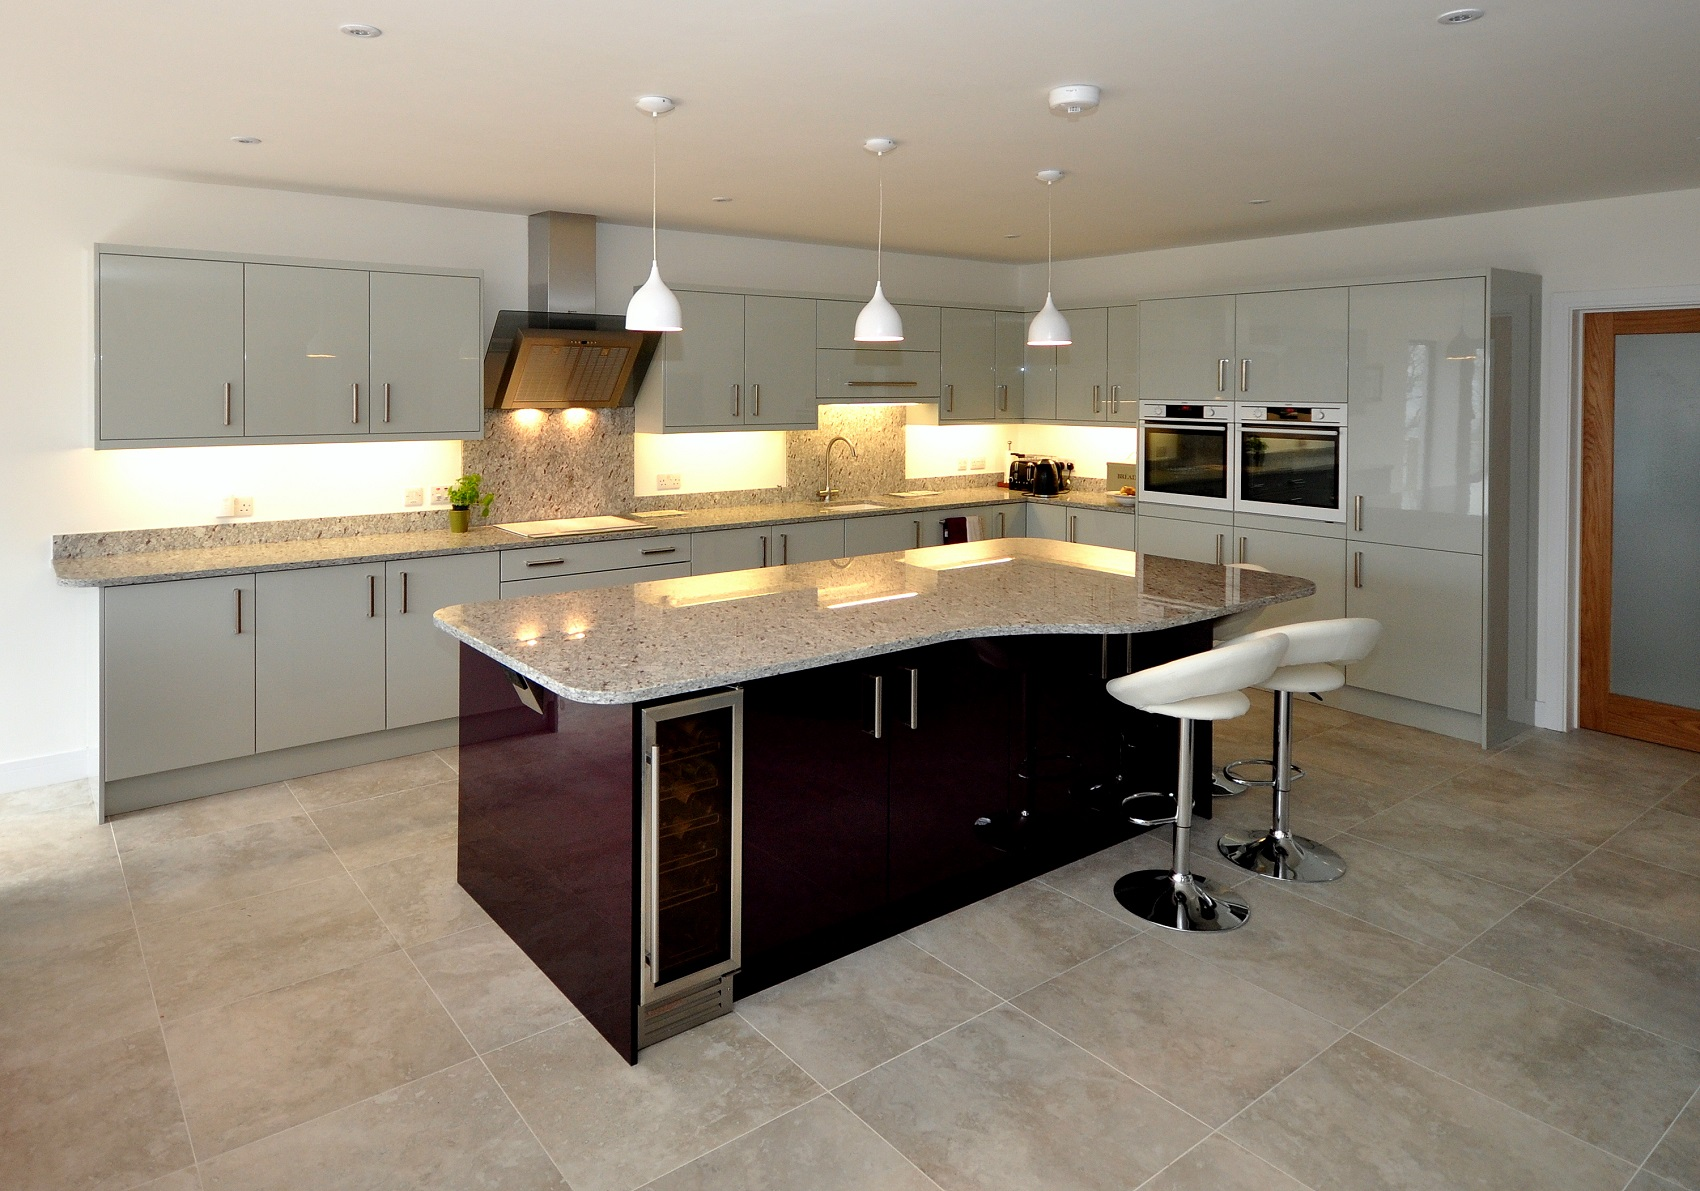 Ambrosia White Granite - Kitchen by Cornwall Kitchen Studio